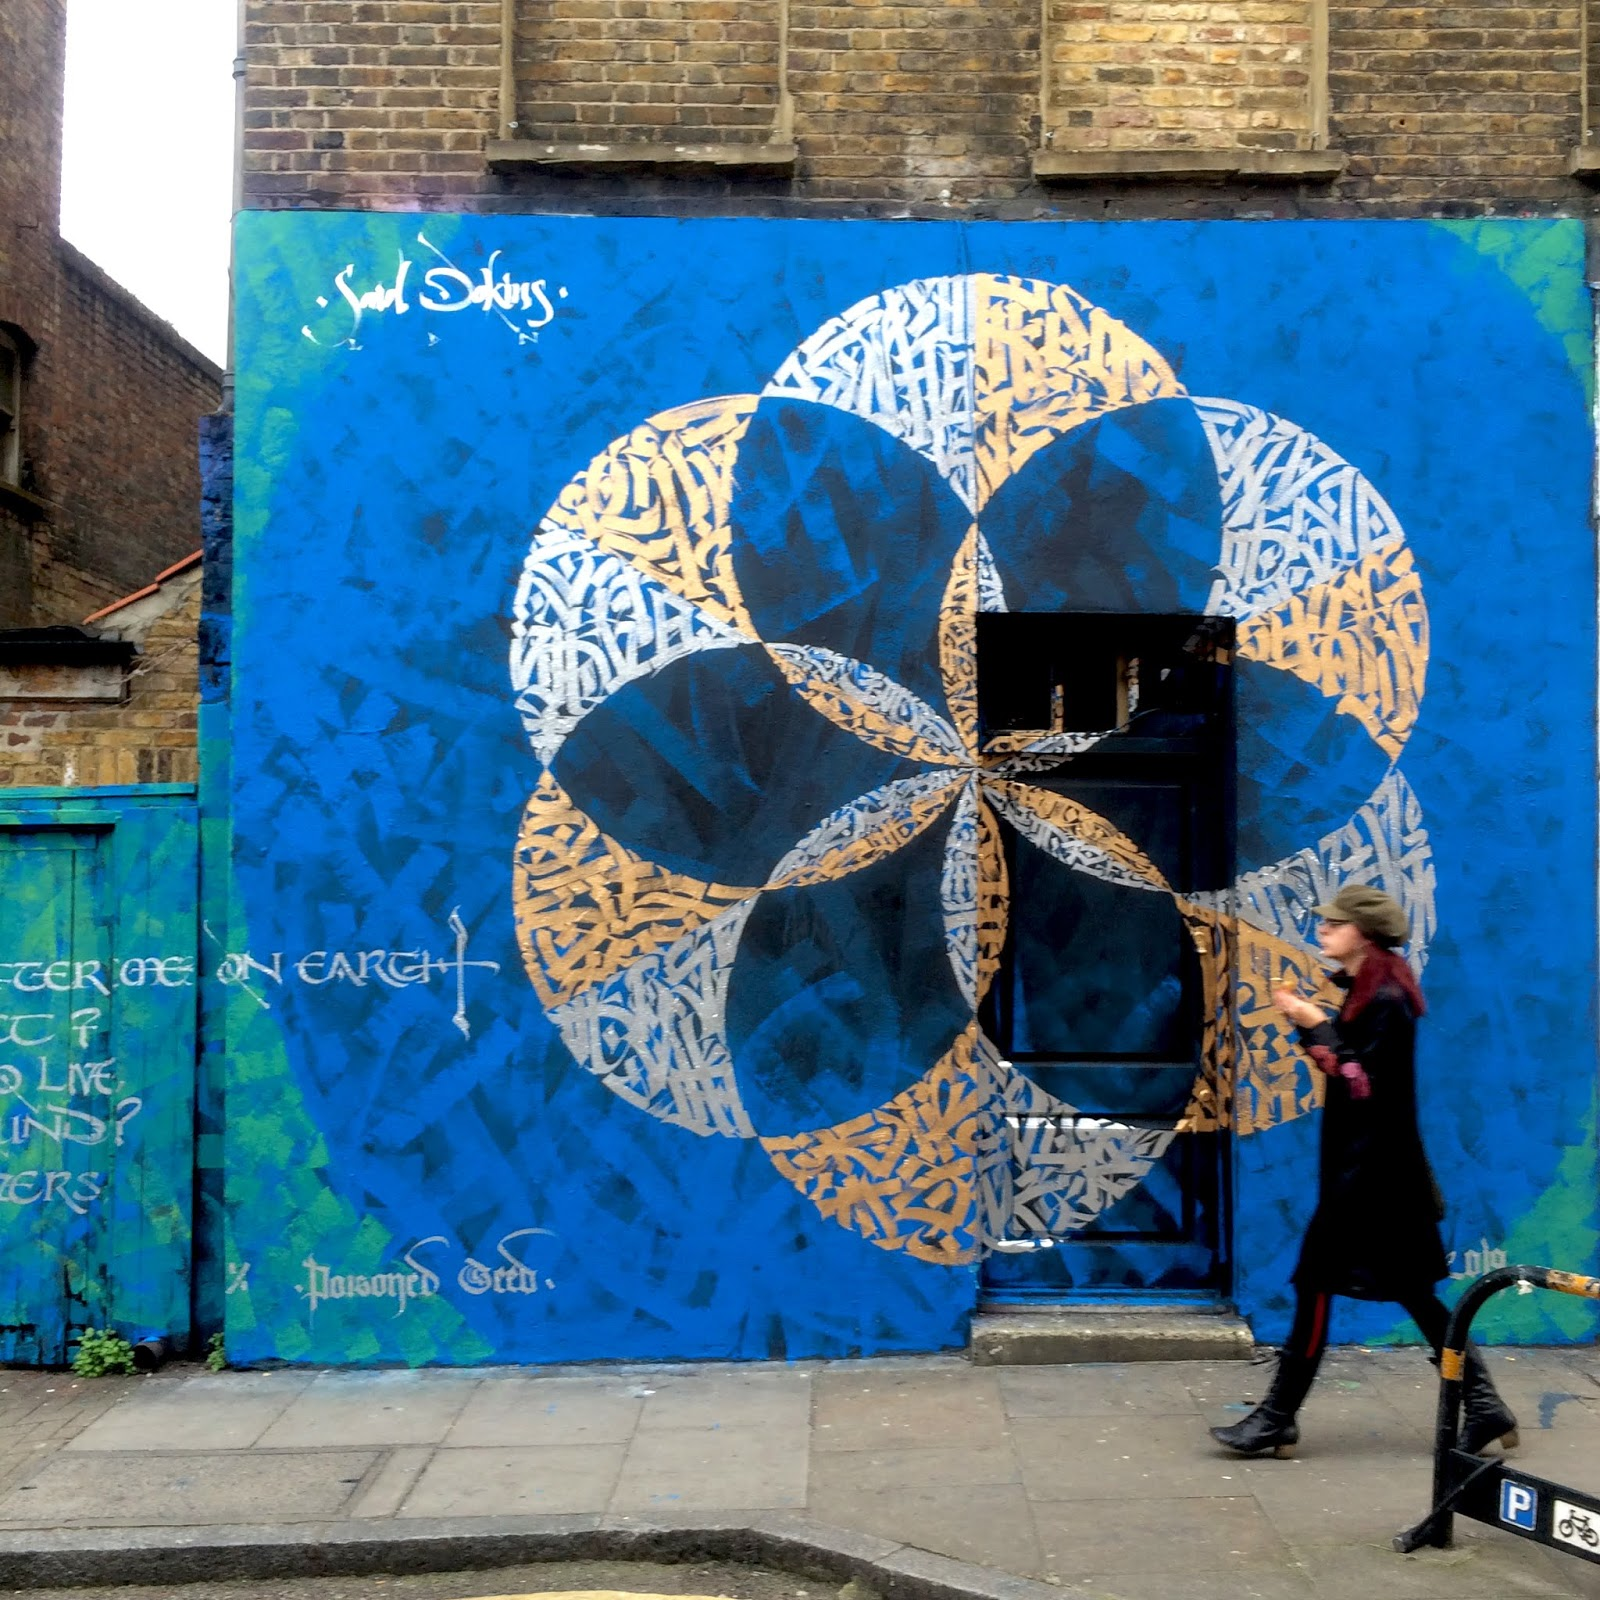 Mural Art London Said Dokins